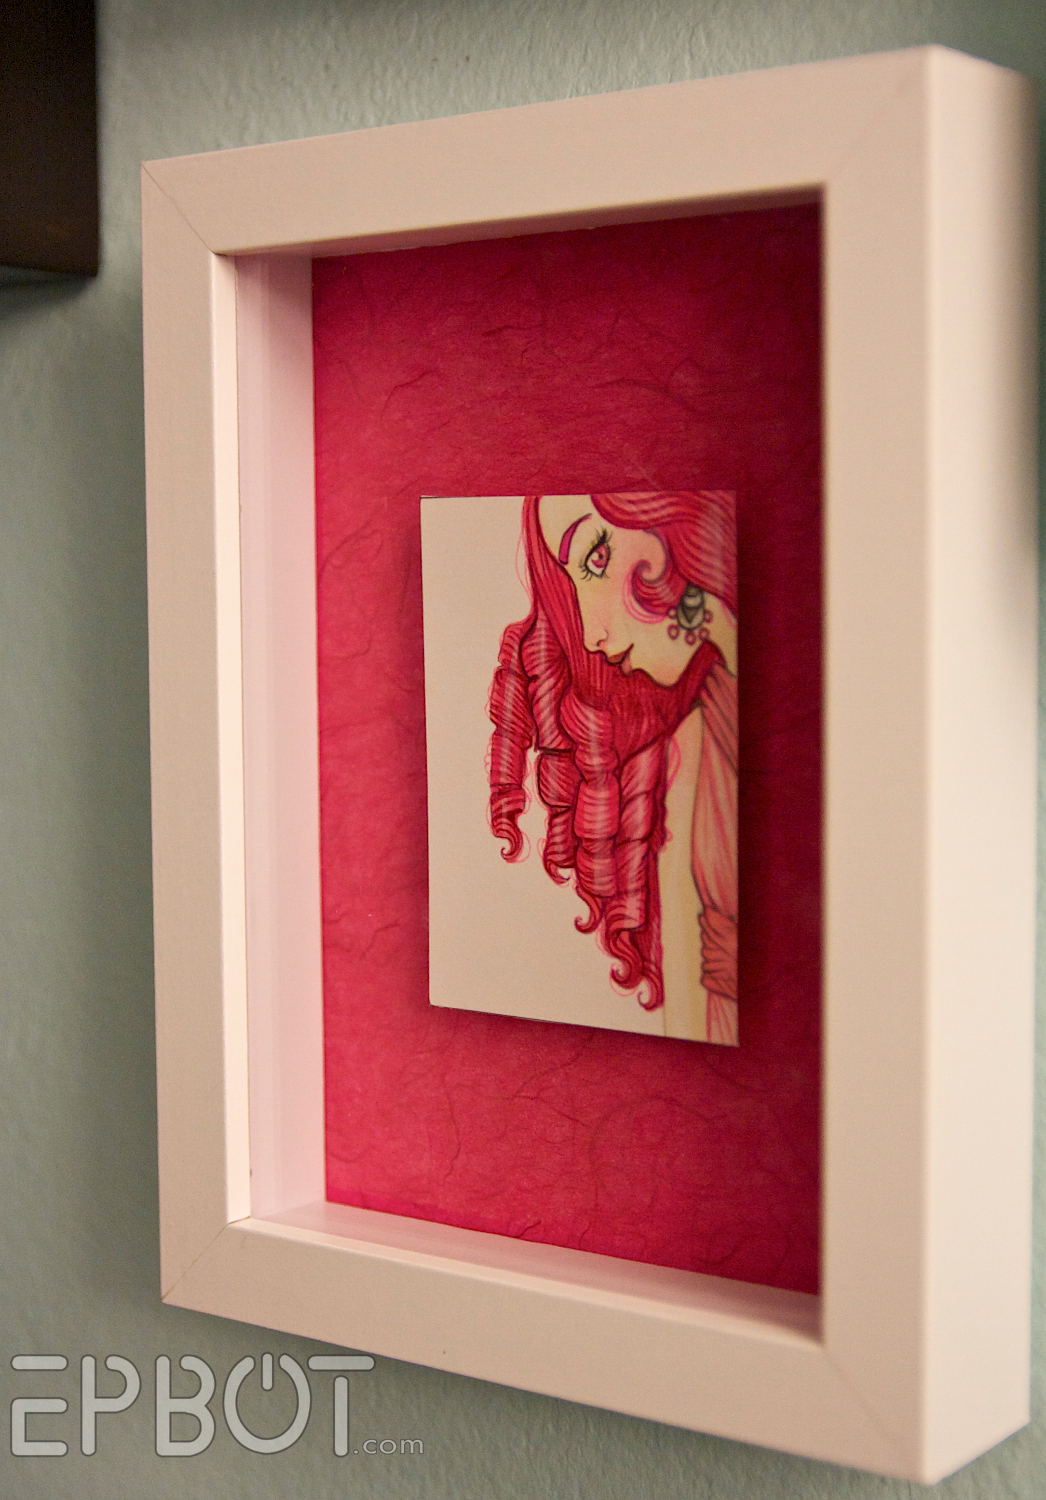 EPBOT: Turn Any Fat Frame Into a Shadowbox Frame!